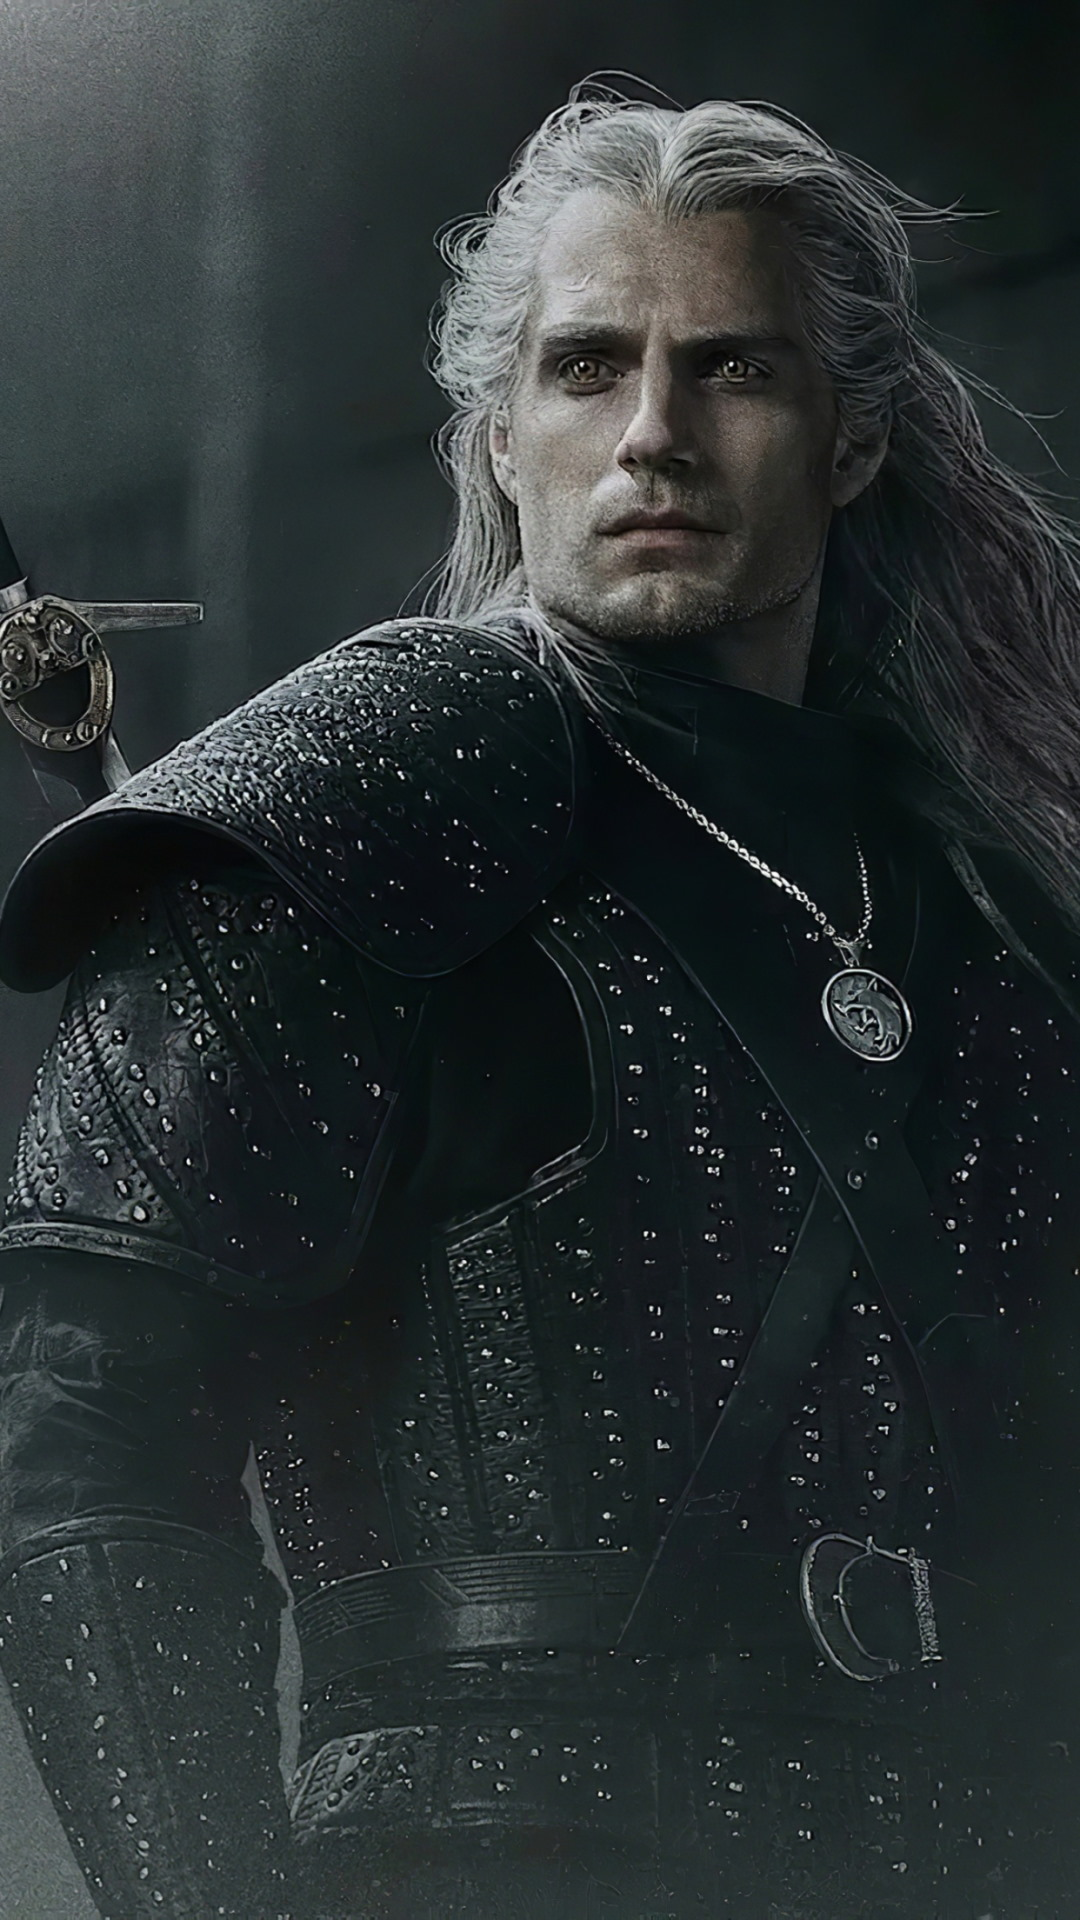 Henry Cavli in The Witcher wallpaper 1080x1920